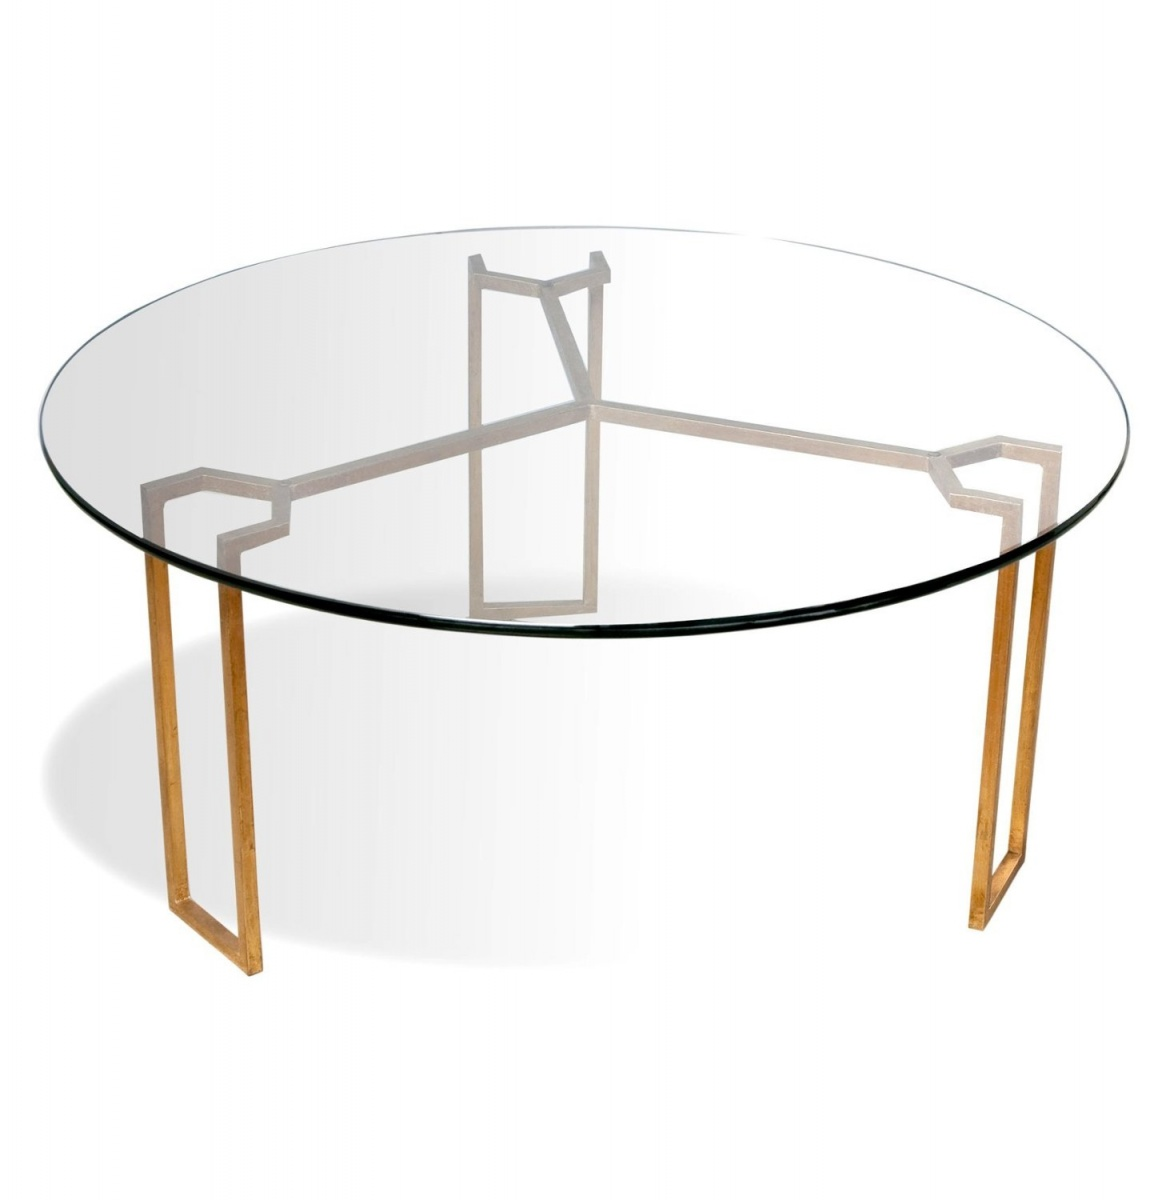 Small Round Glass Coffee Table Small Round Coffee Table Sets Small Coffee Tables For Small Spaces (Image 10 of 10)